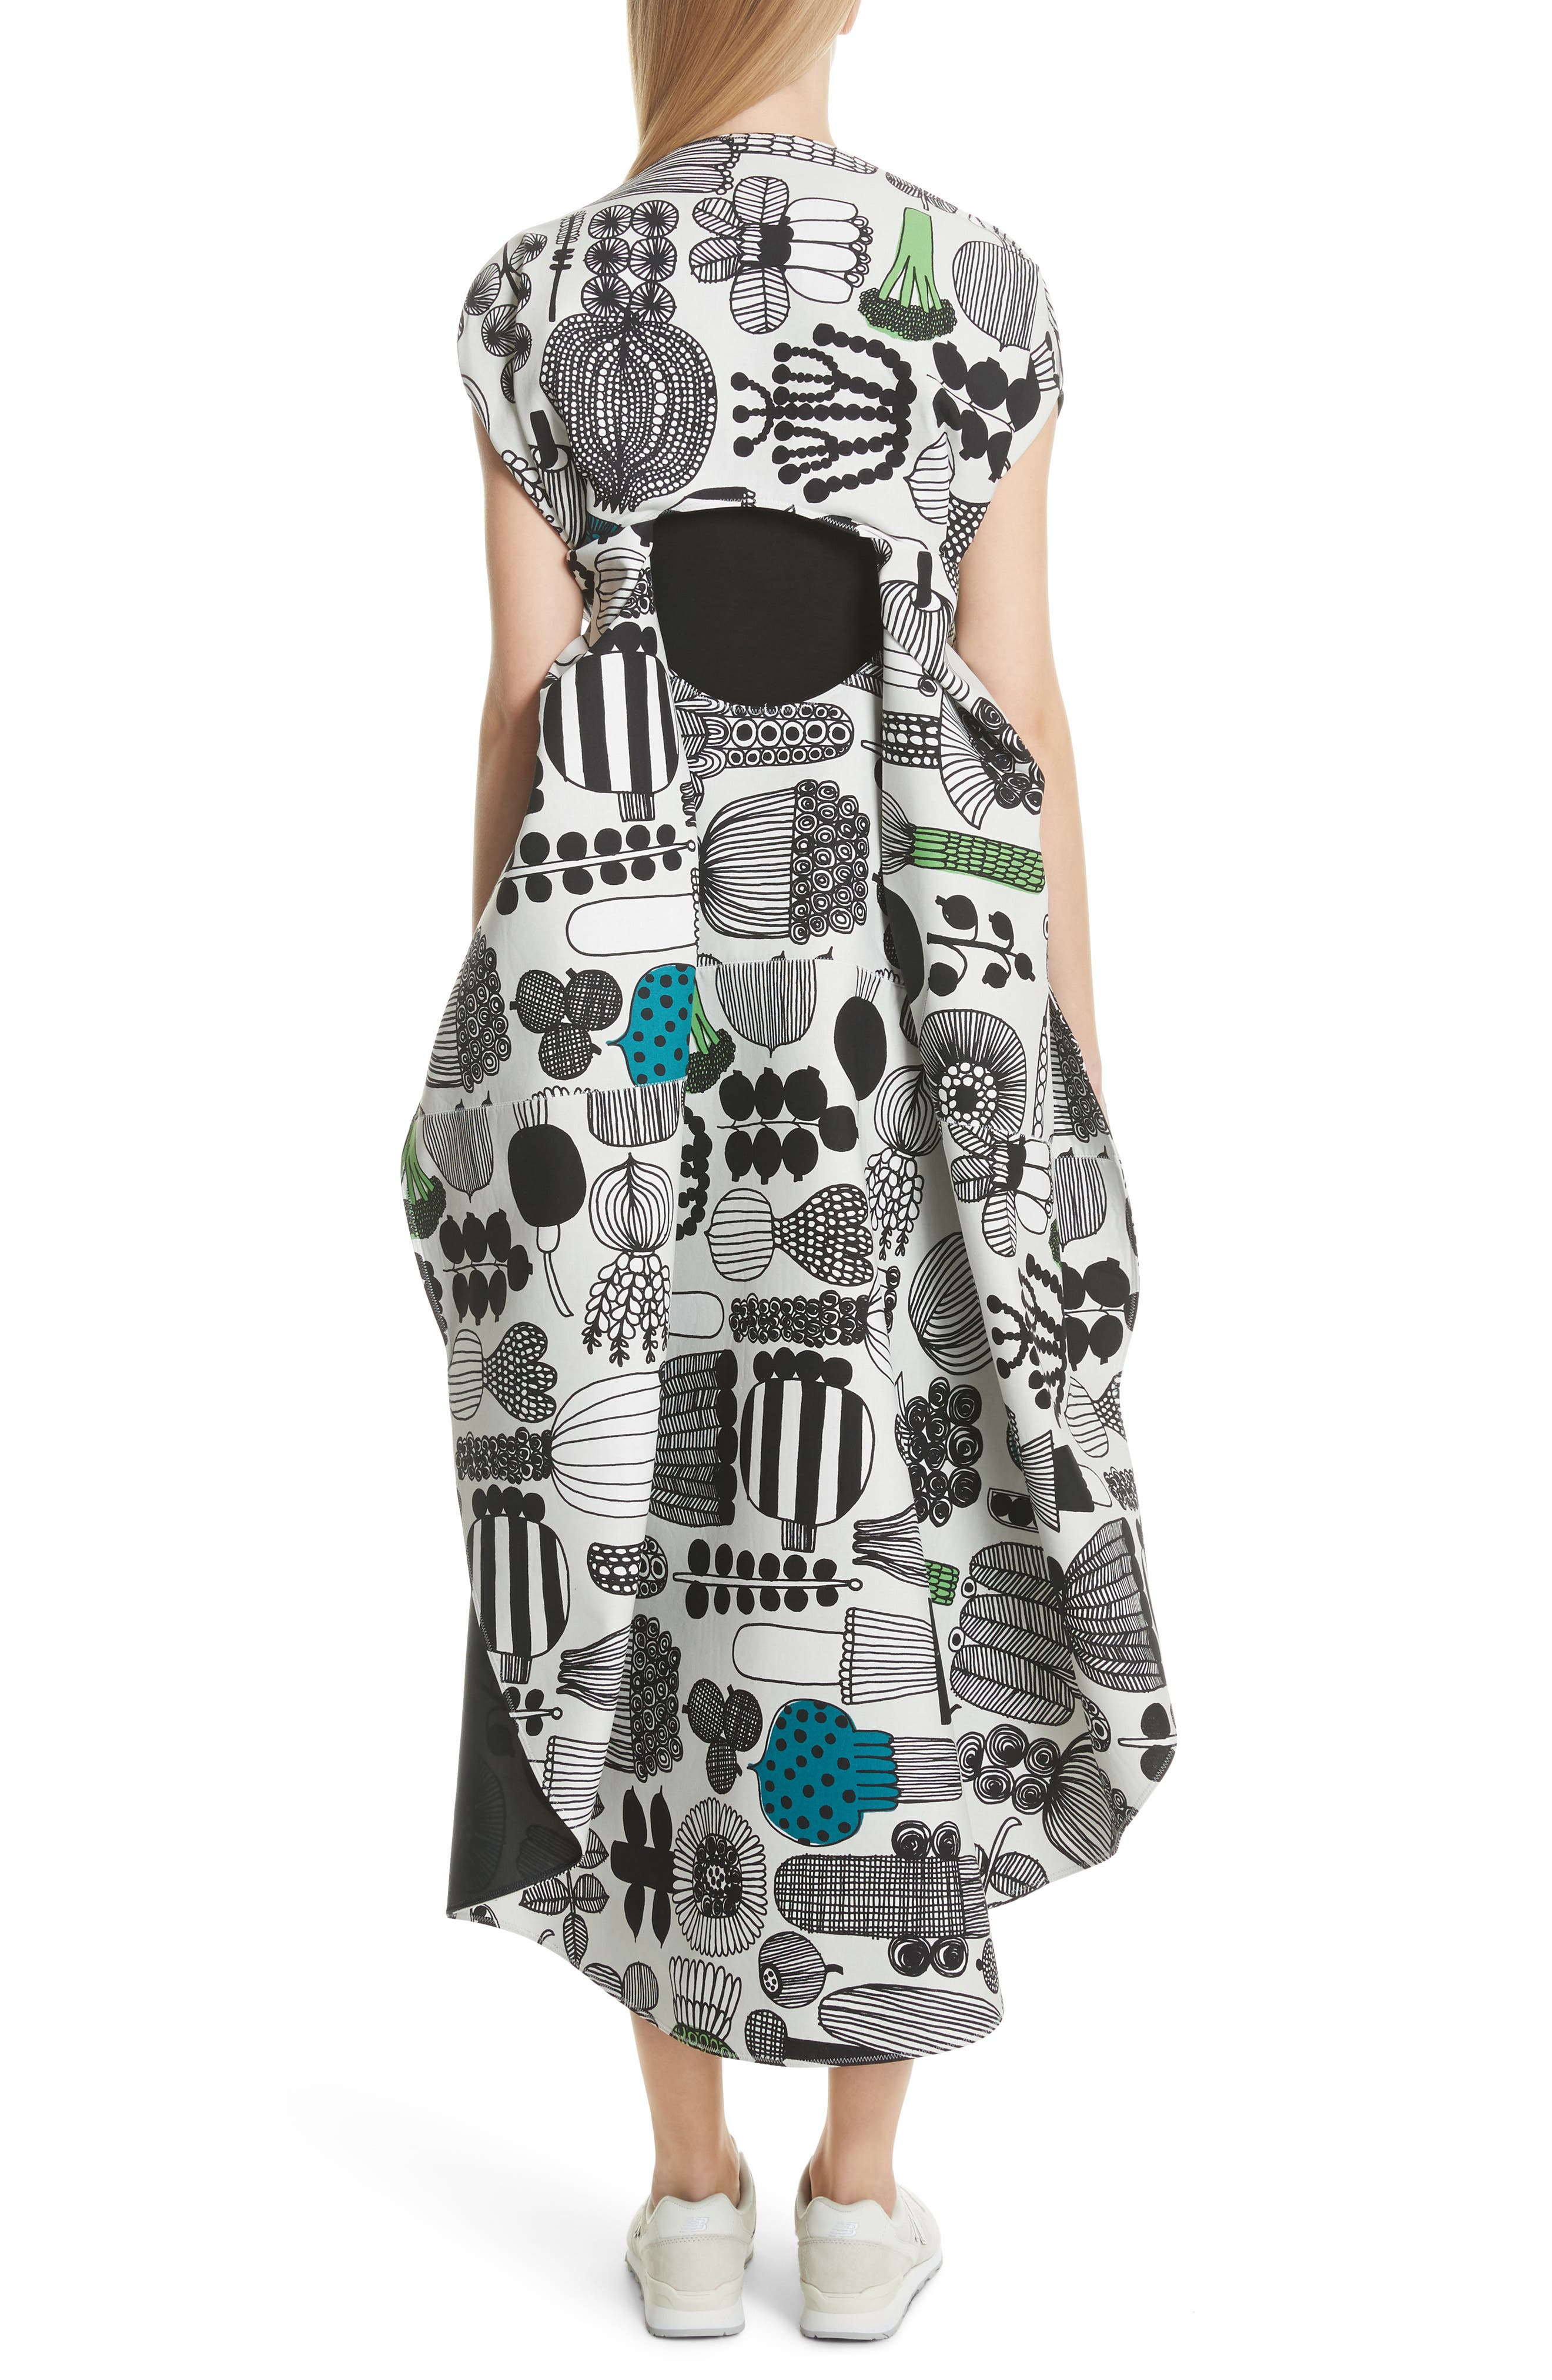 Vegetable Print Shift Dress,                             Alternate thumbnail 2, color,                             Gry/ Grn/ Blk